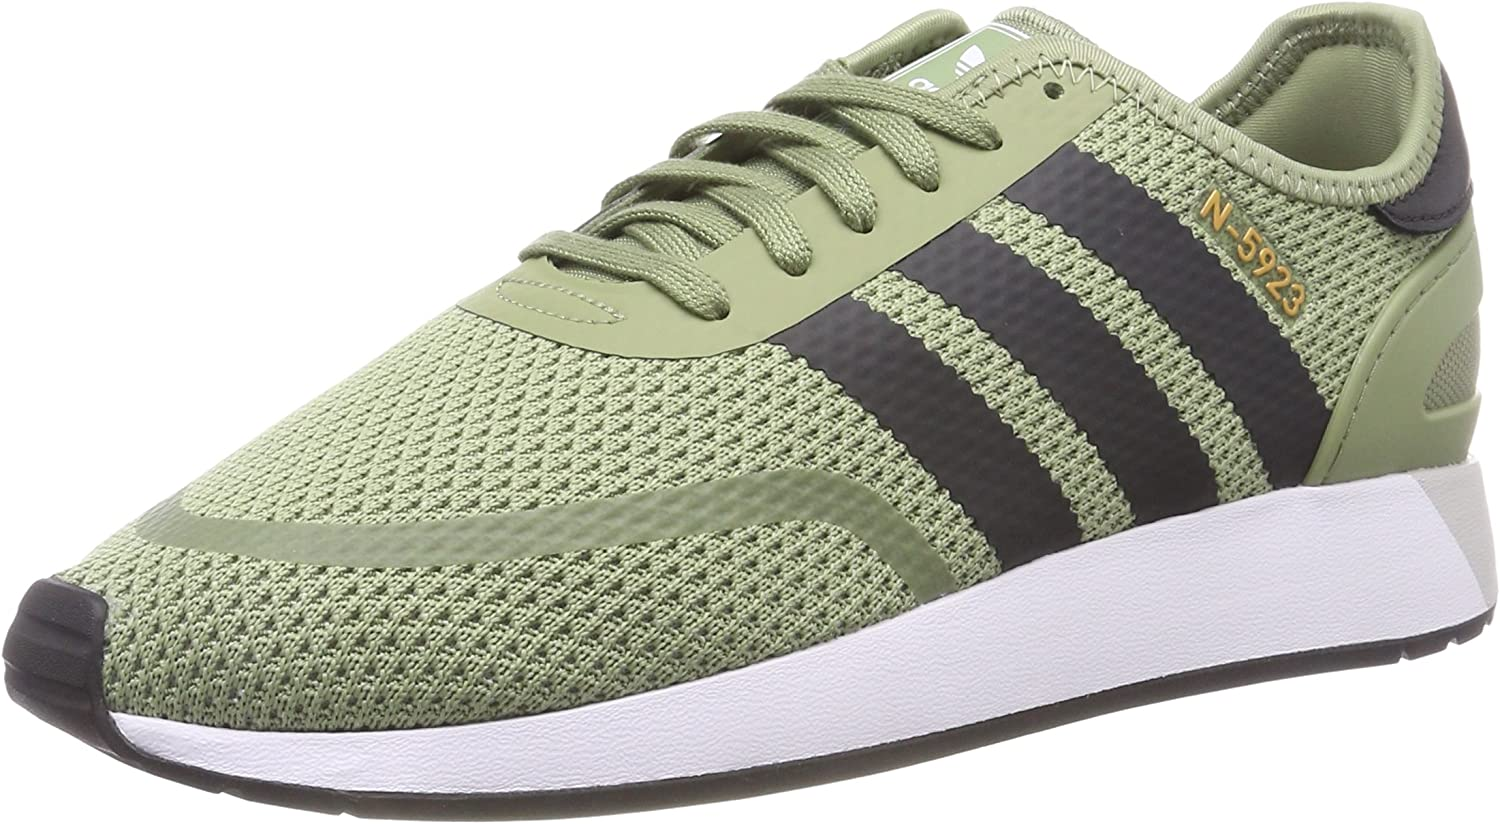 adidas N-5923, Zapatillas Unisex Adulto